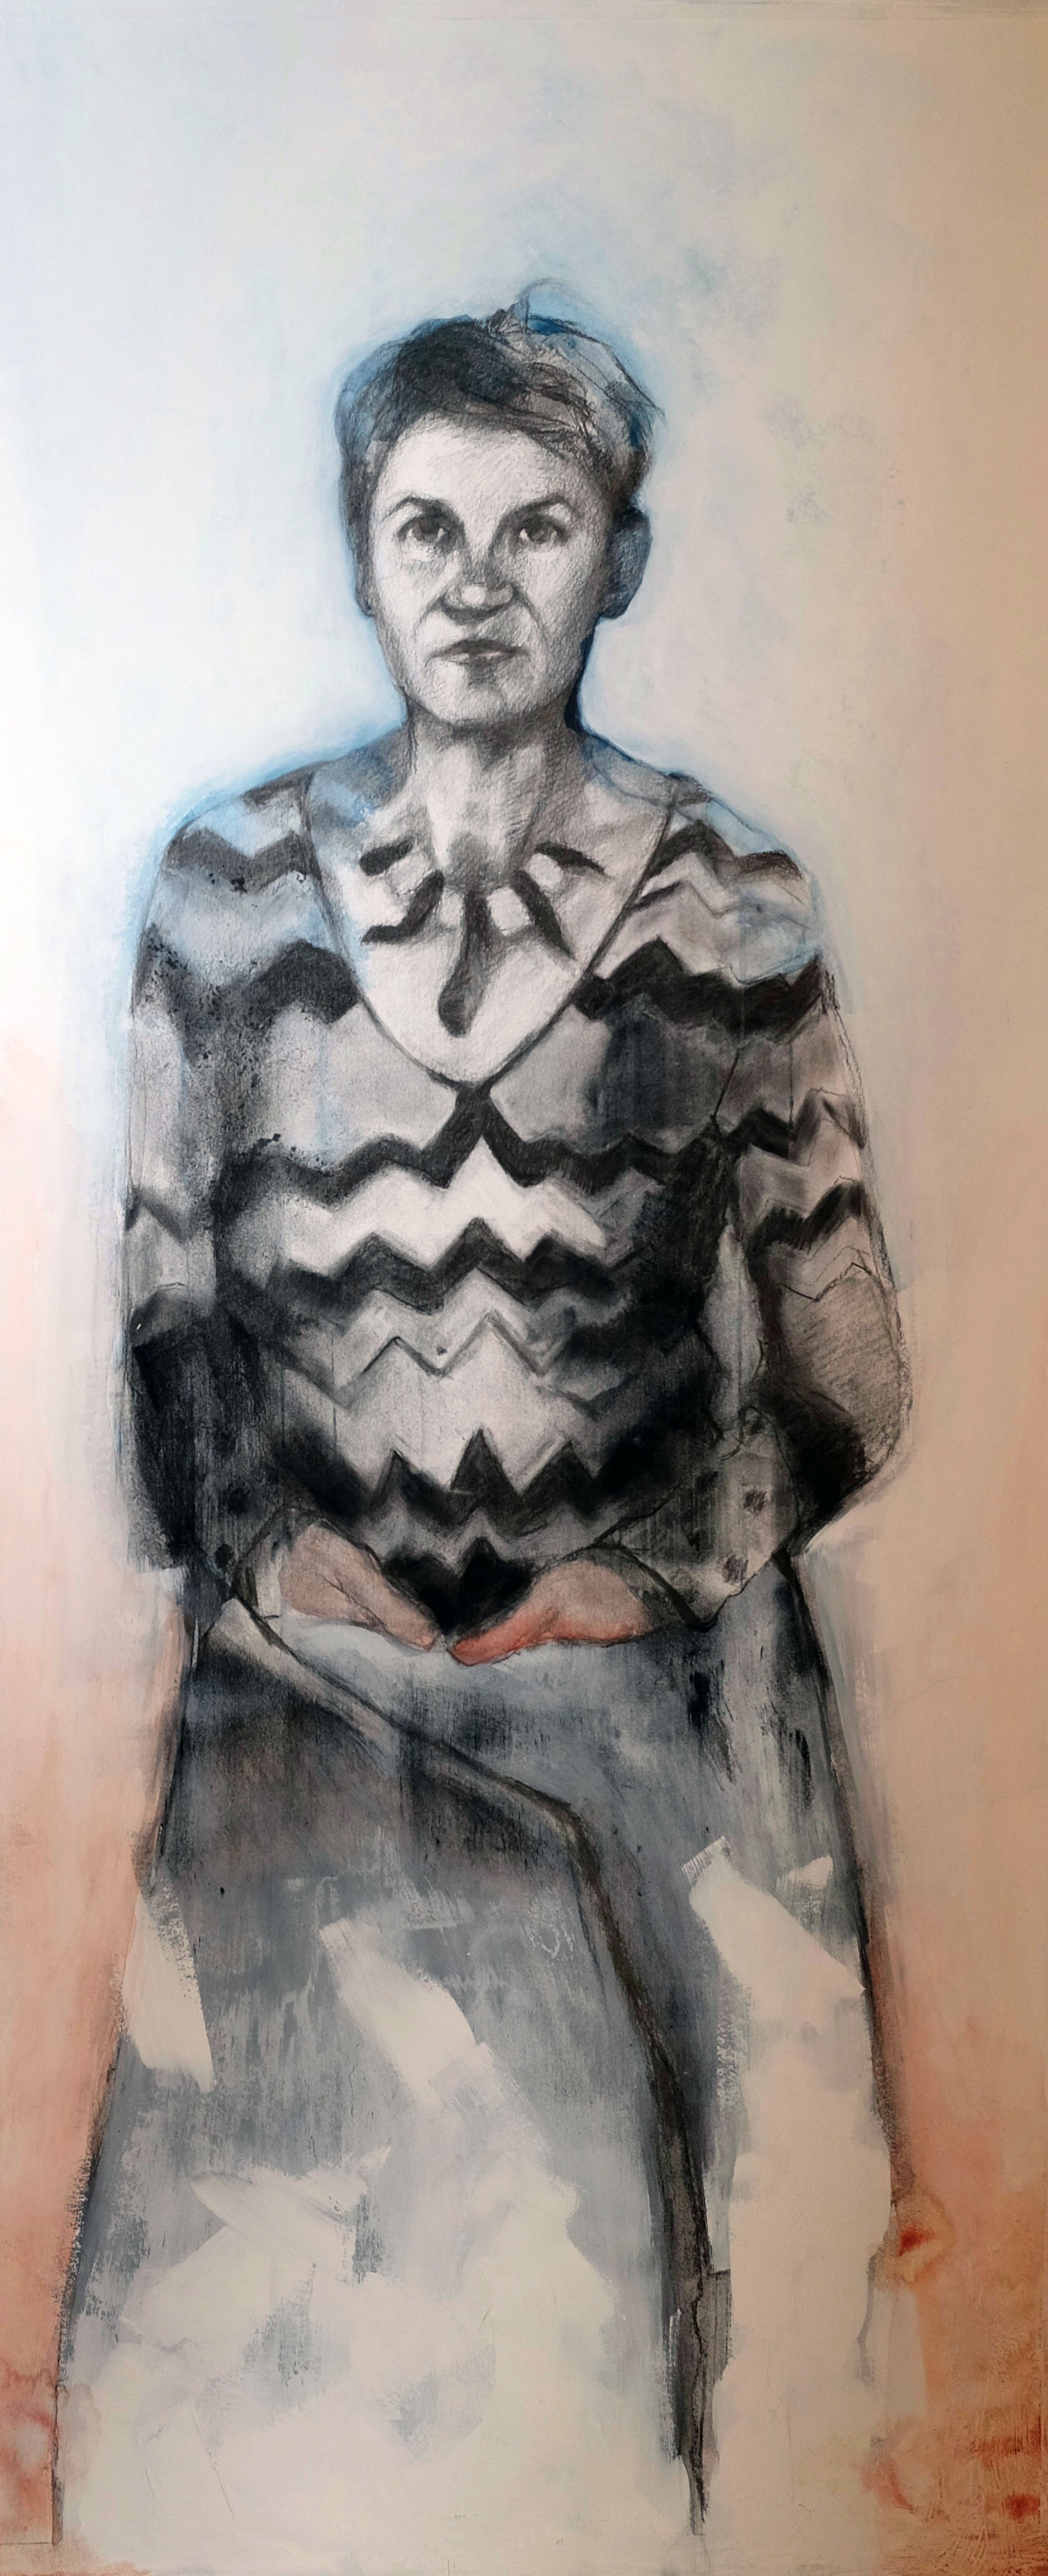 Charcoal and watercolour on paper, 120 x 60 cm